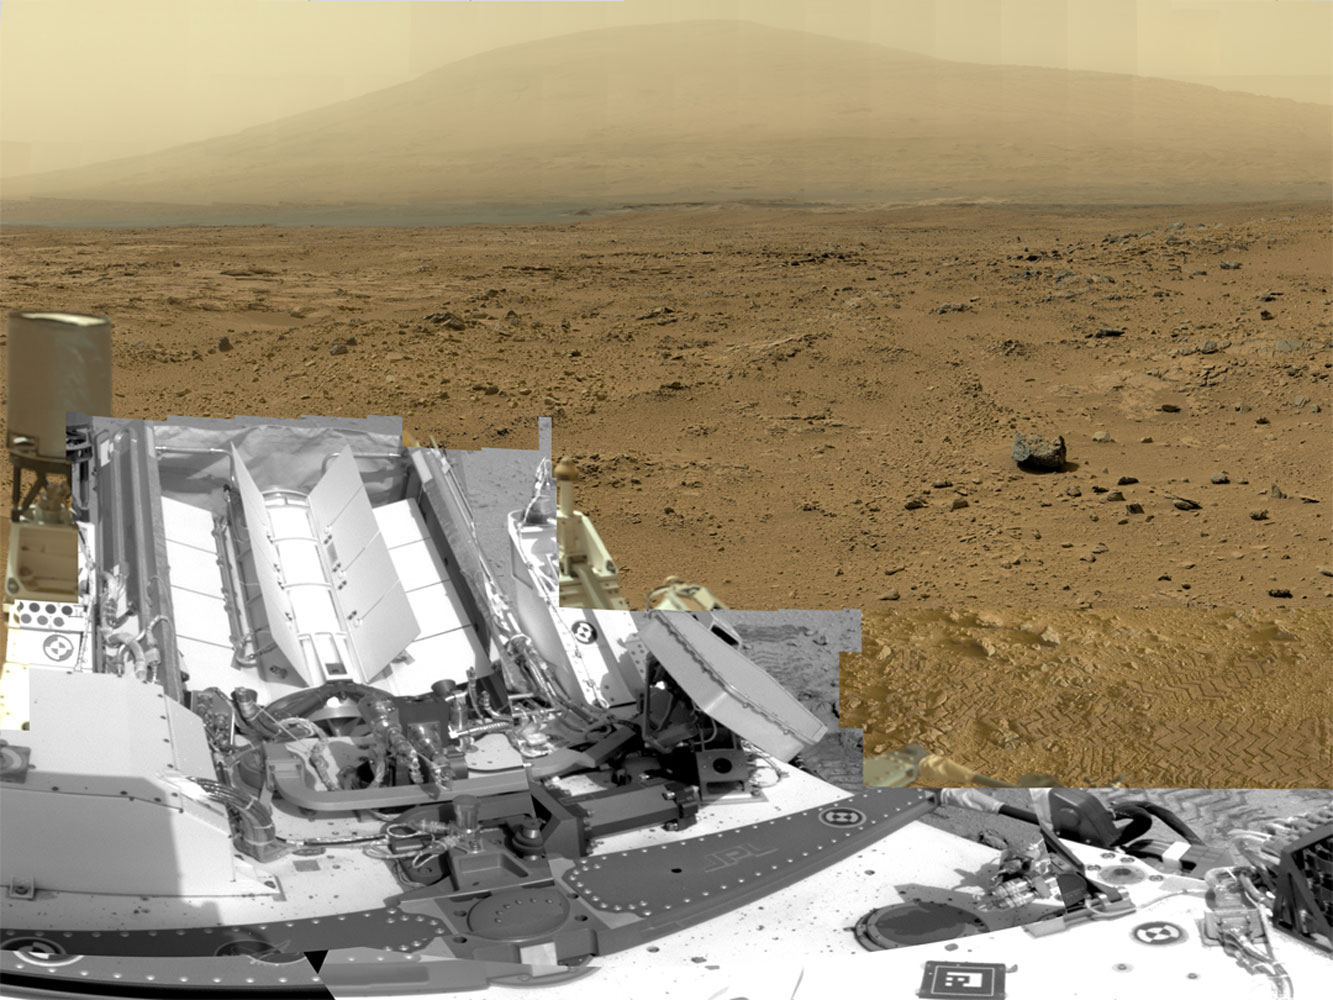 """A full-circle view released by NASA on June 20, 2013, combined nearly 900 images taken by NASA's Curiosity Mars rover, <a href=""""http://mars.nasa.gov/multimedia/interactives/billionpixel/"""">generating a panorama</a> with 1.3 billion pixels in the full-resolution version. The view is centered toward the south, with north at both ends. It shows NASA's Mars rover Curiosity at the 'Rocknest' site where the rover scooped up samples of windblown dust and sand."""